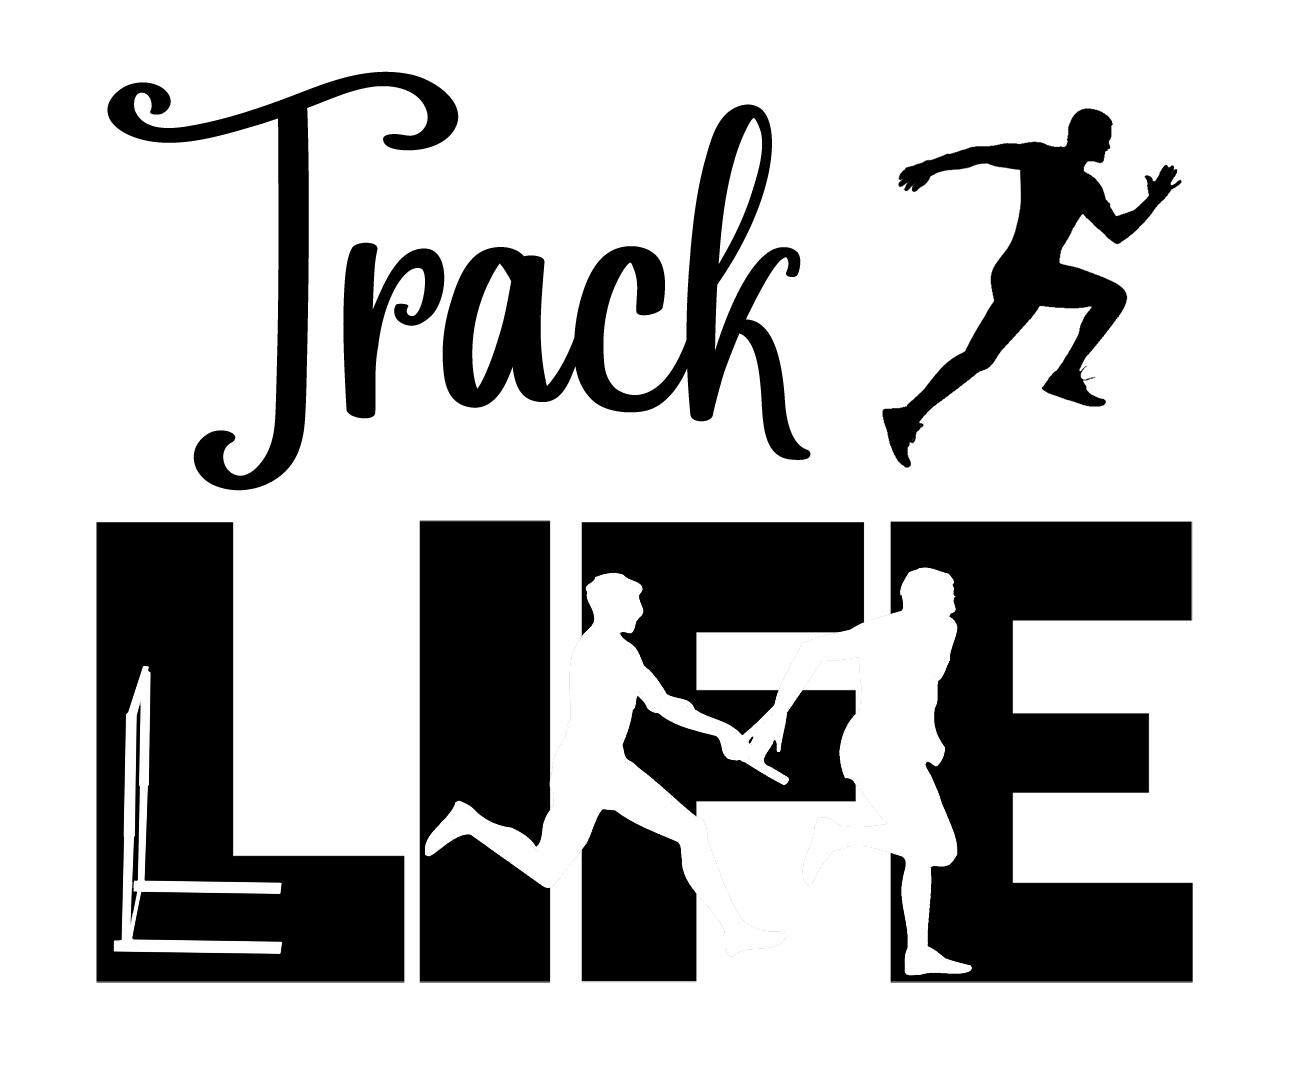 Free Track Life SVG File